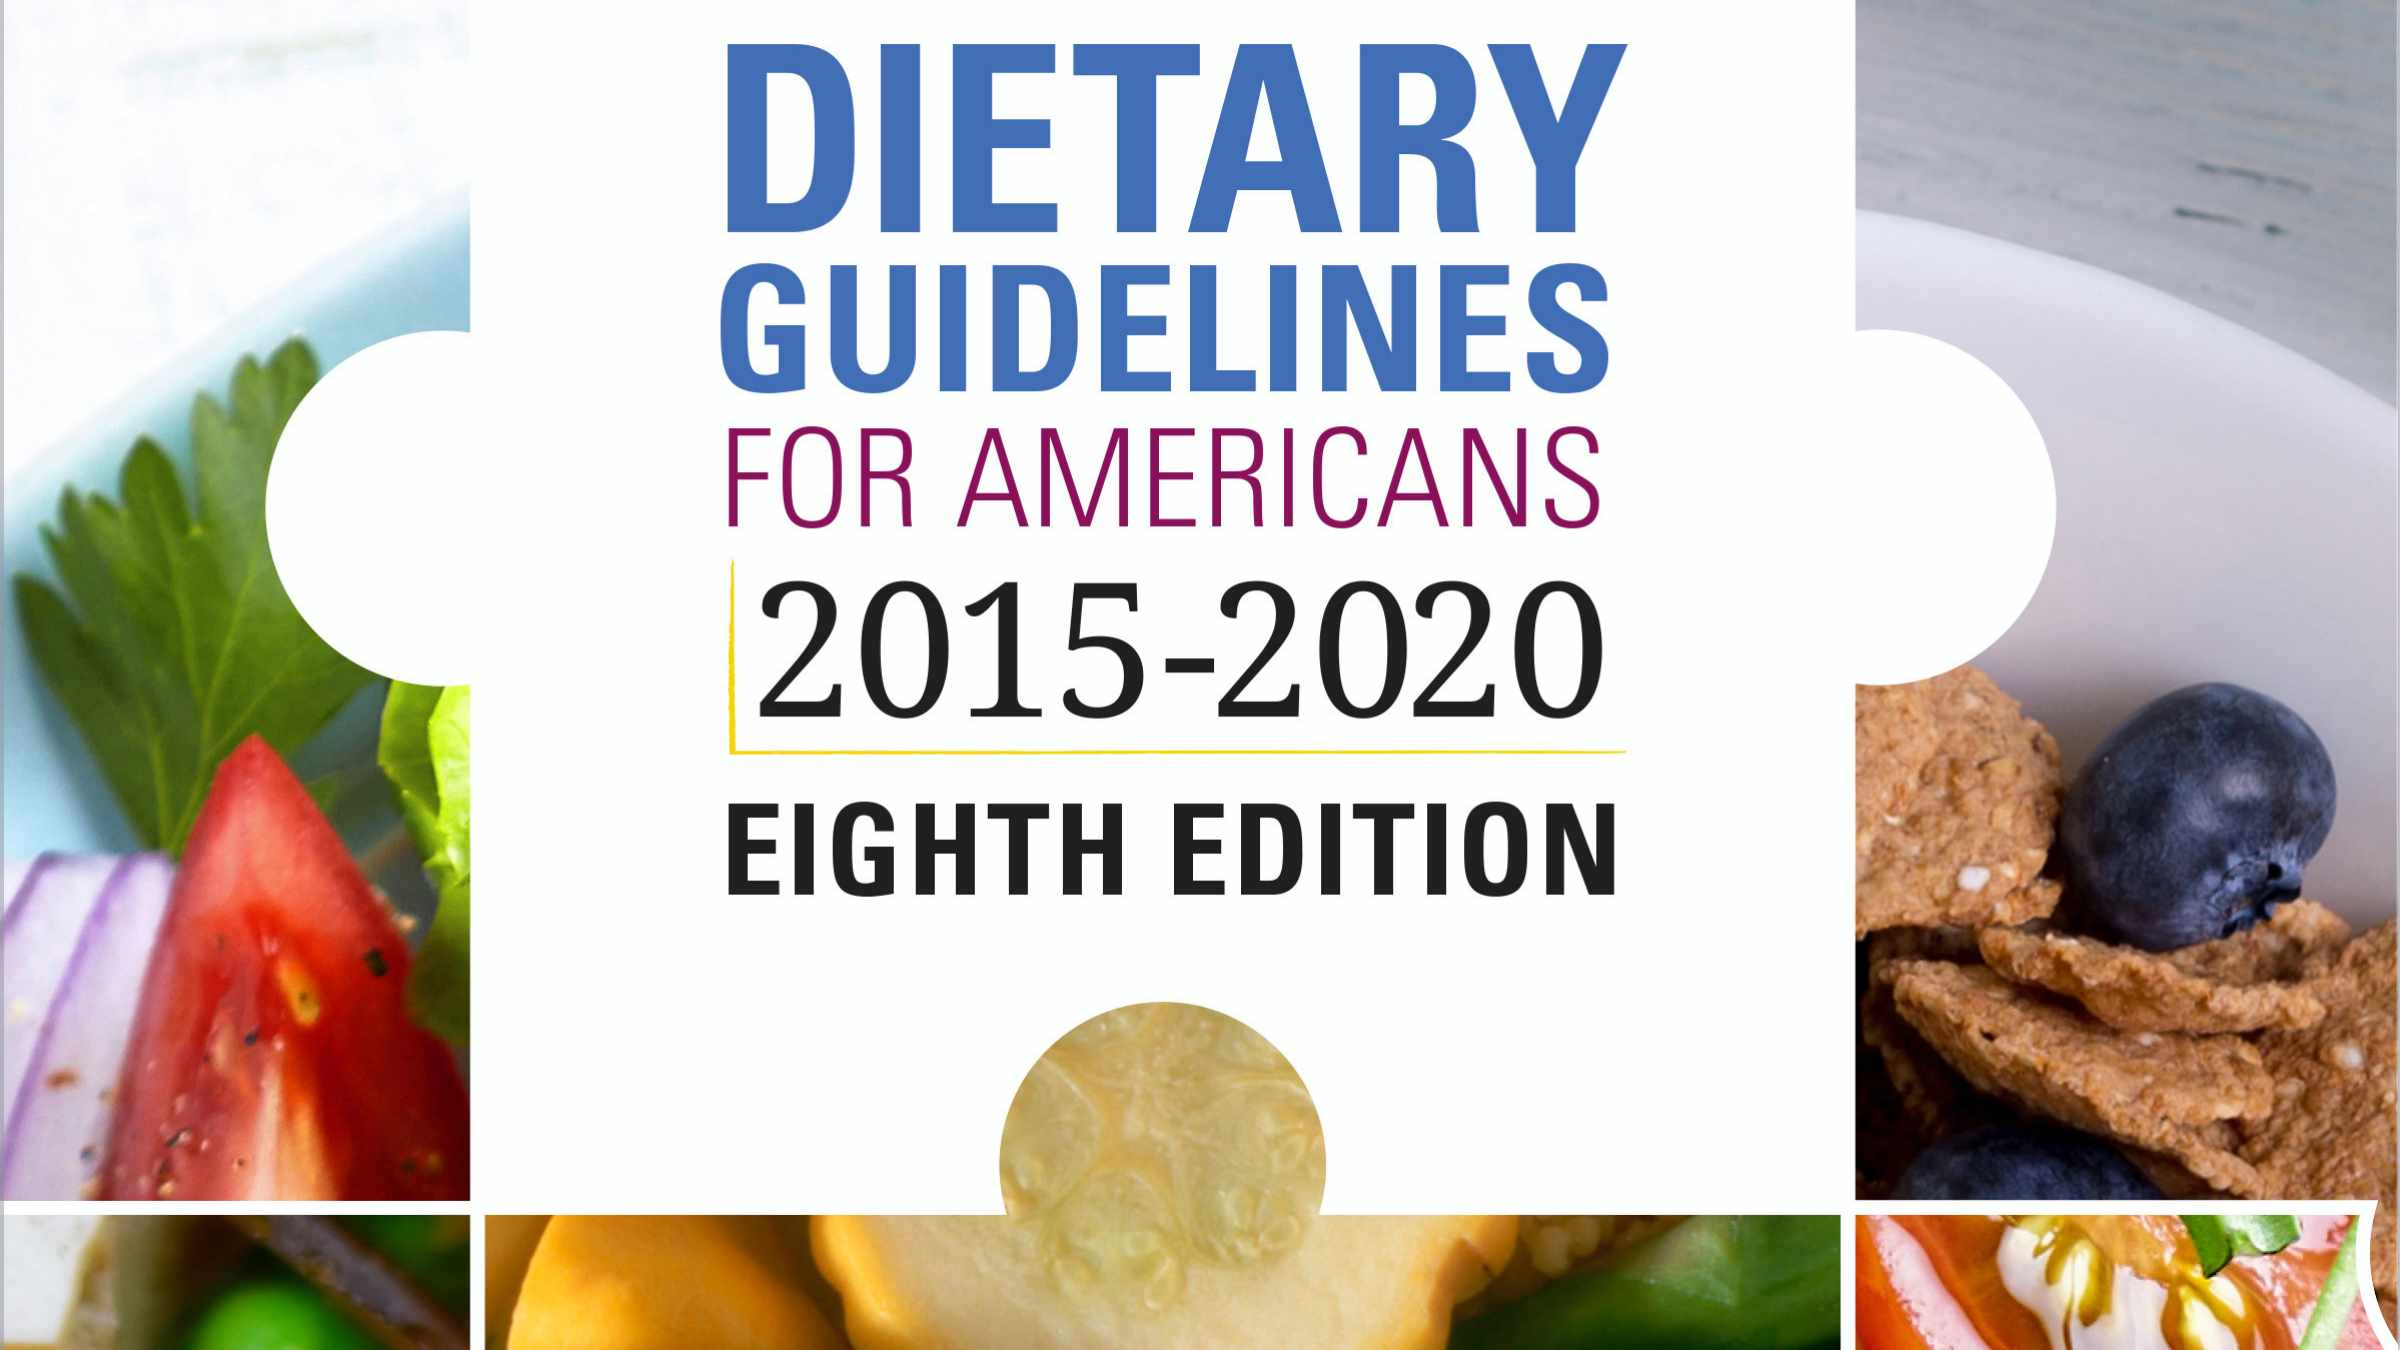 Dietary-Guidelines-16-x-9